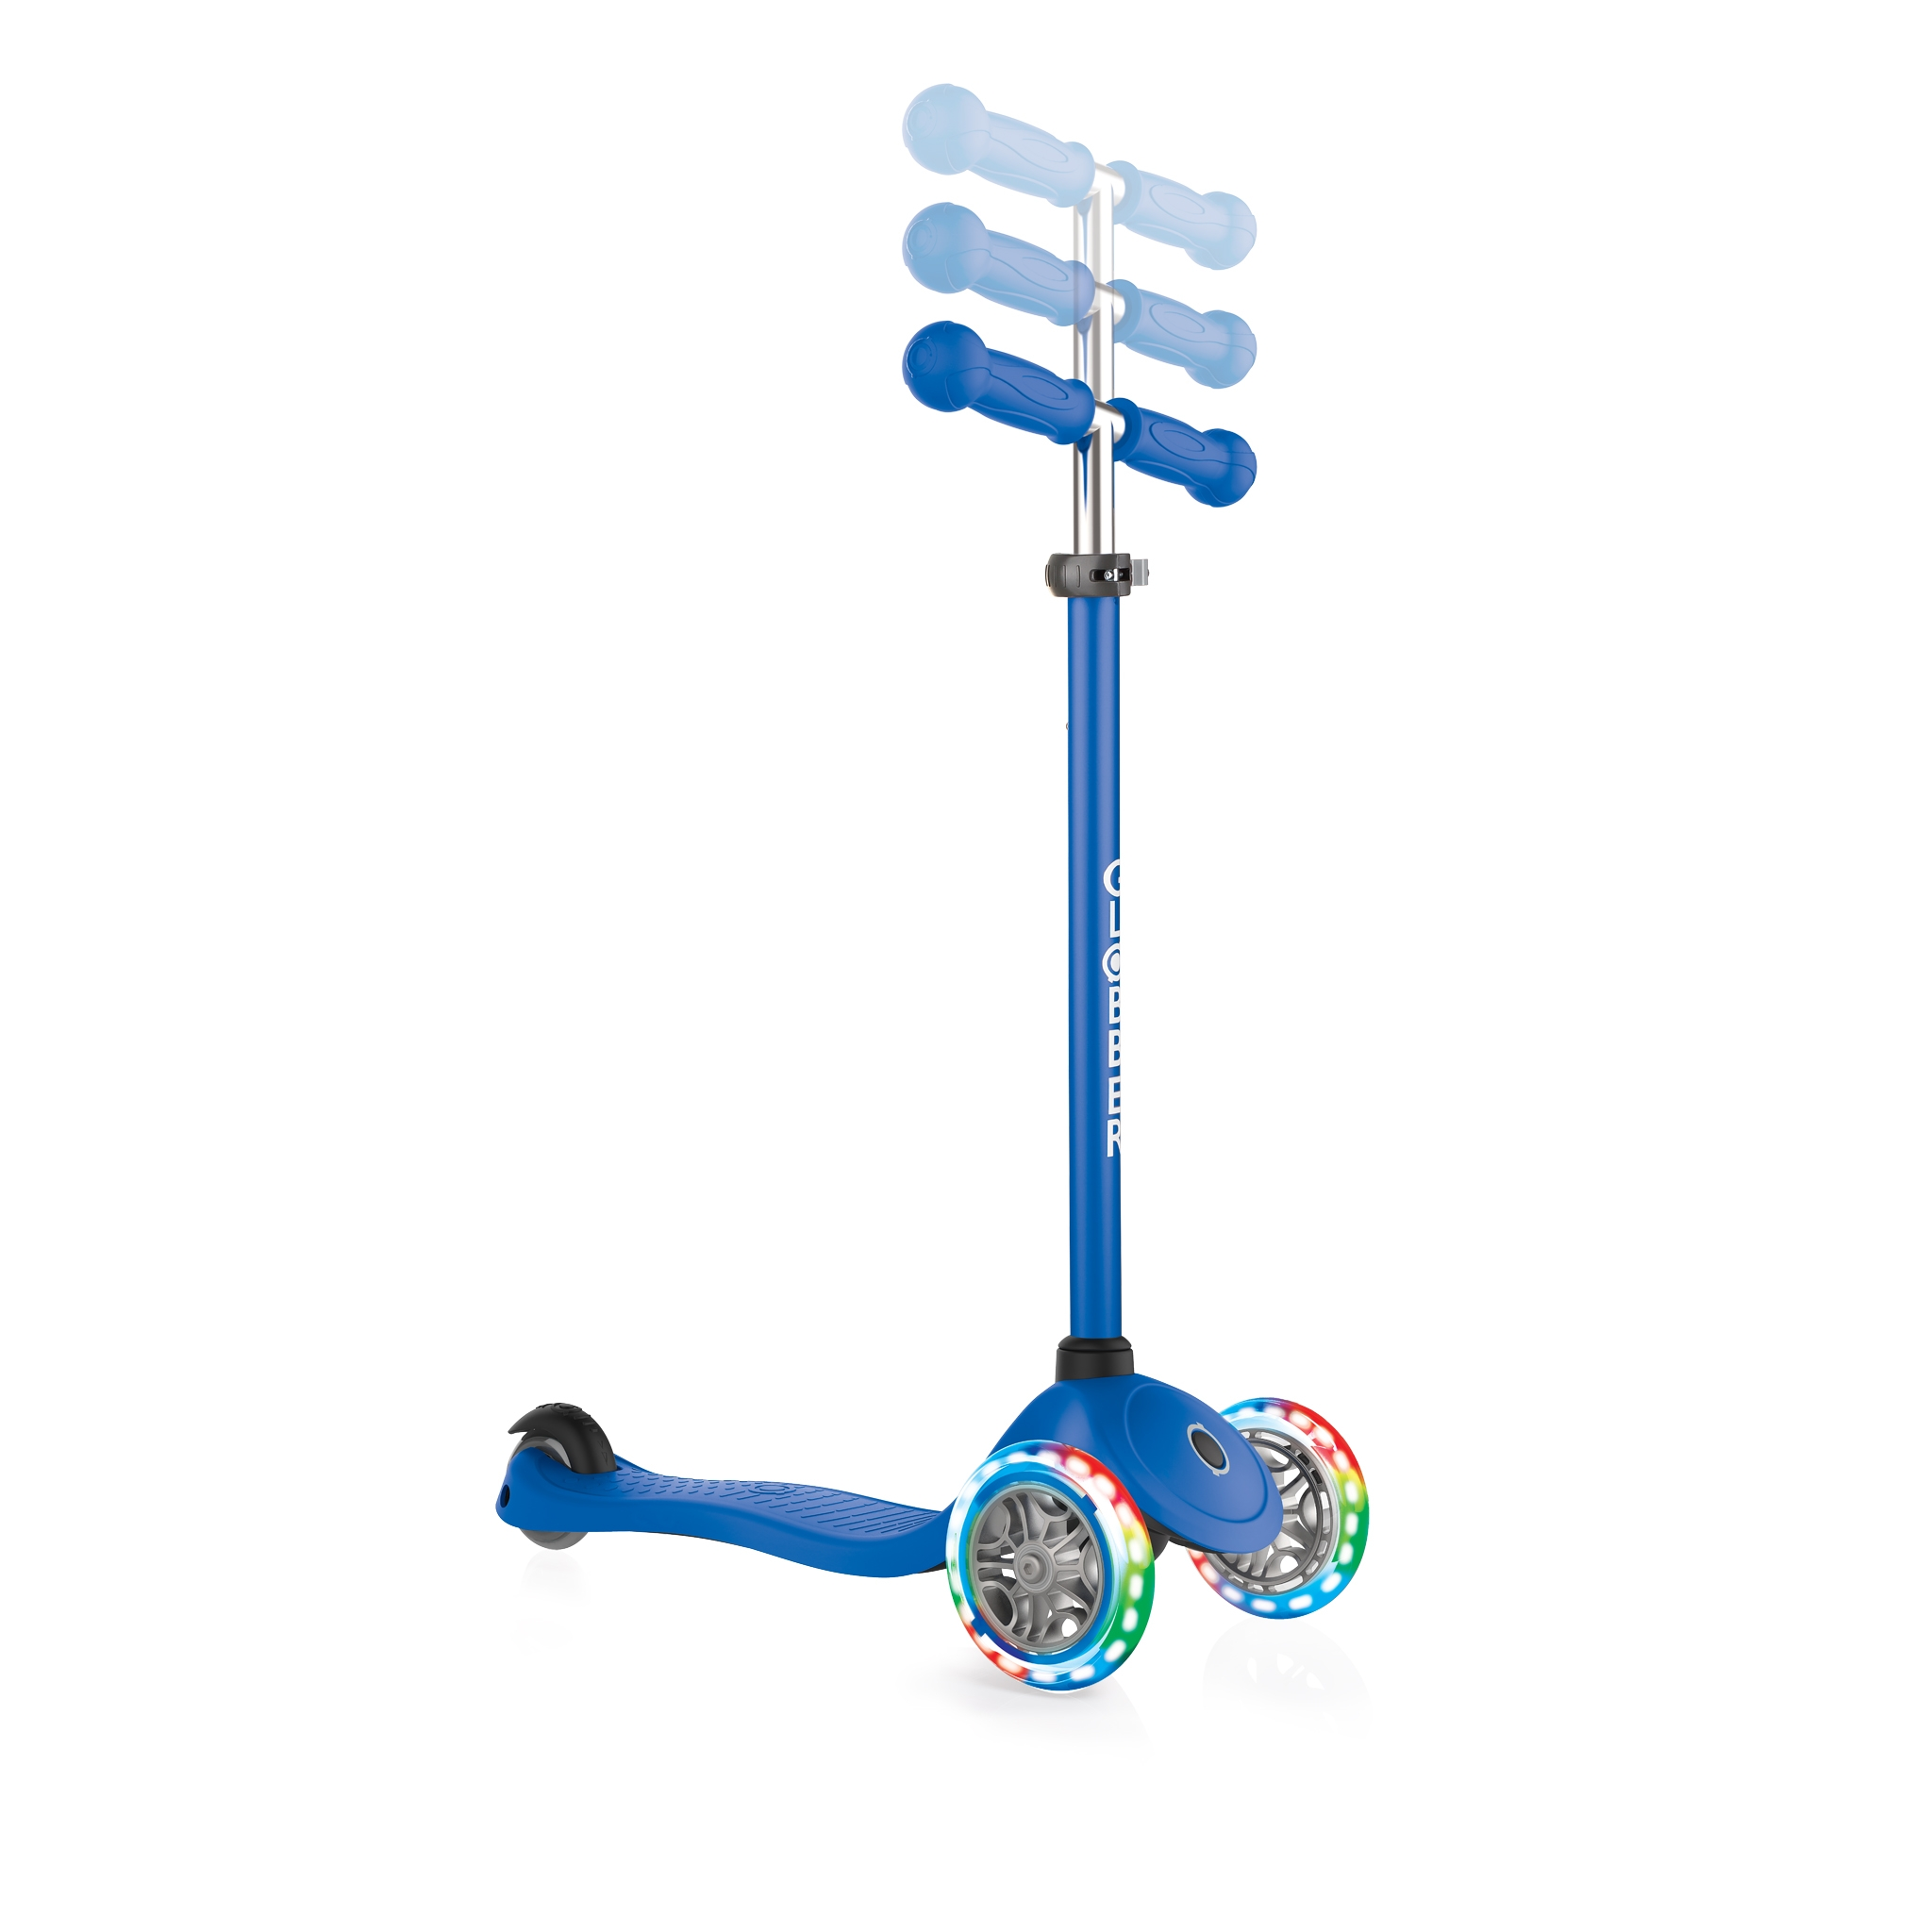 PRIMO-LIGHTS-3-wheel-scooter-for-kids-with-3-height-adjustable-T-bar_navy-blue.jpg. 2